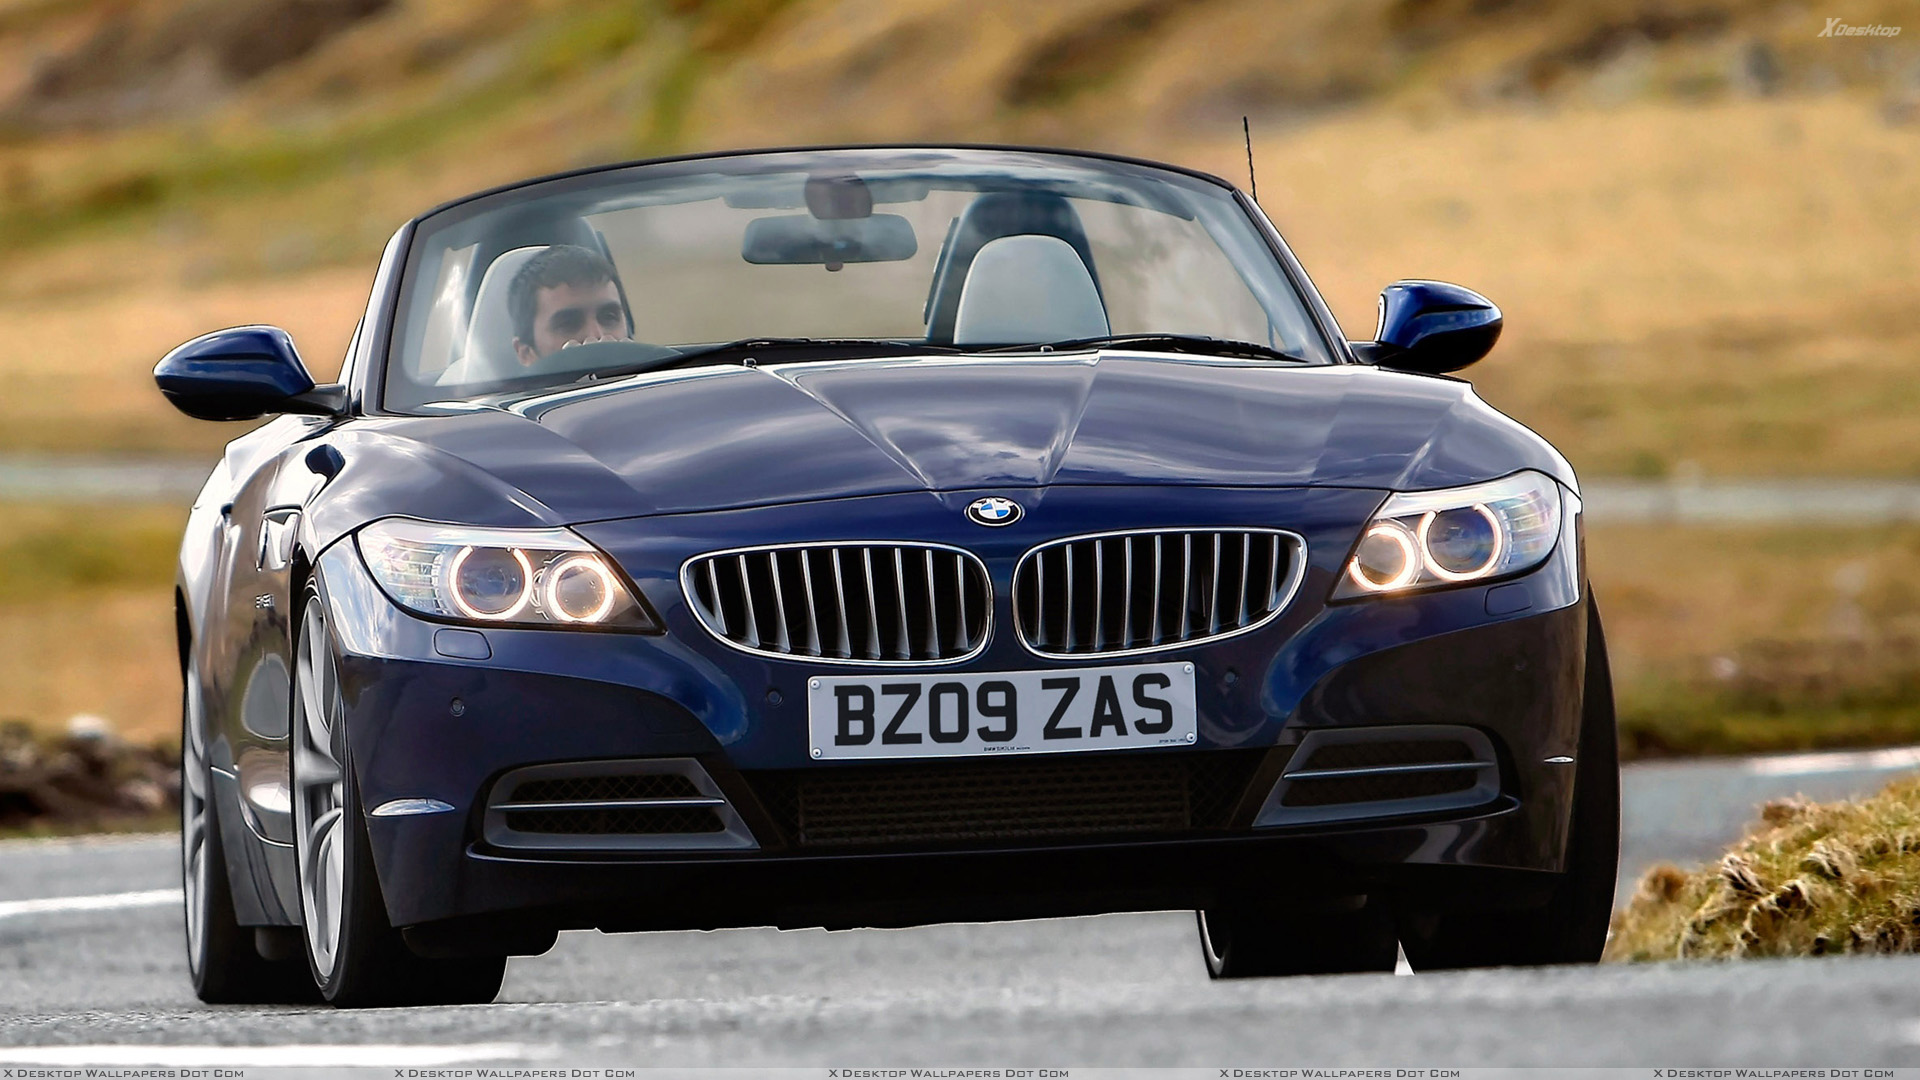 Front Pose Of 2009 Bmw Z4 In Blue Wallpaper